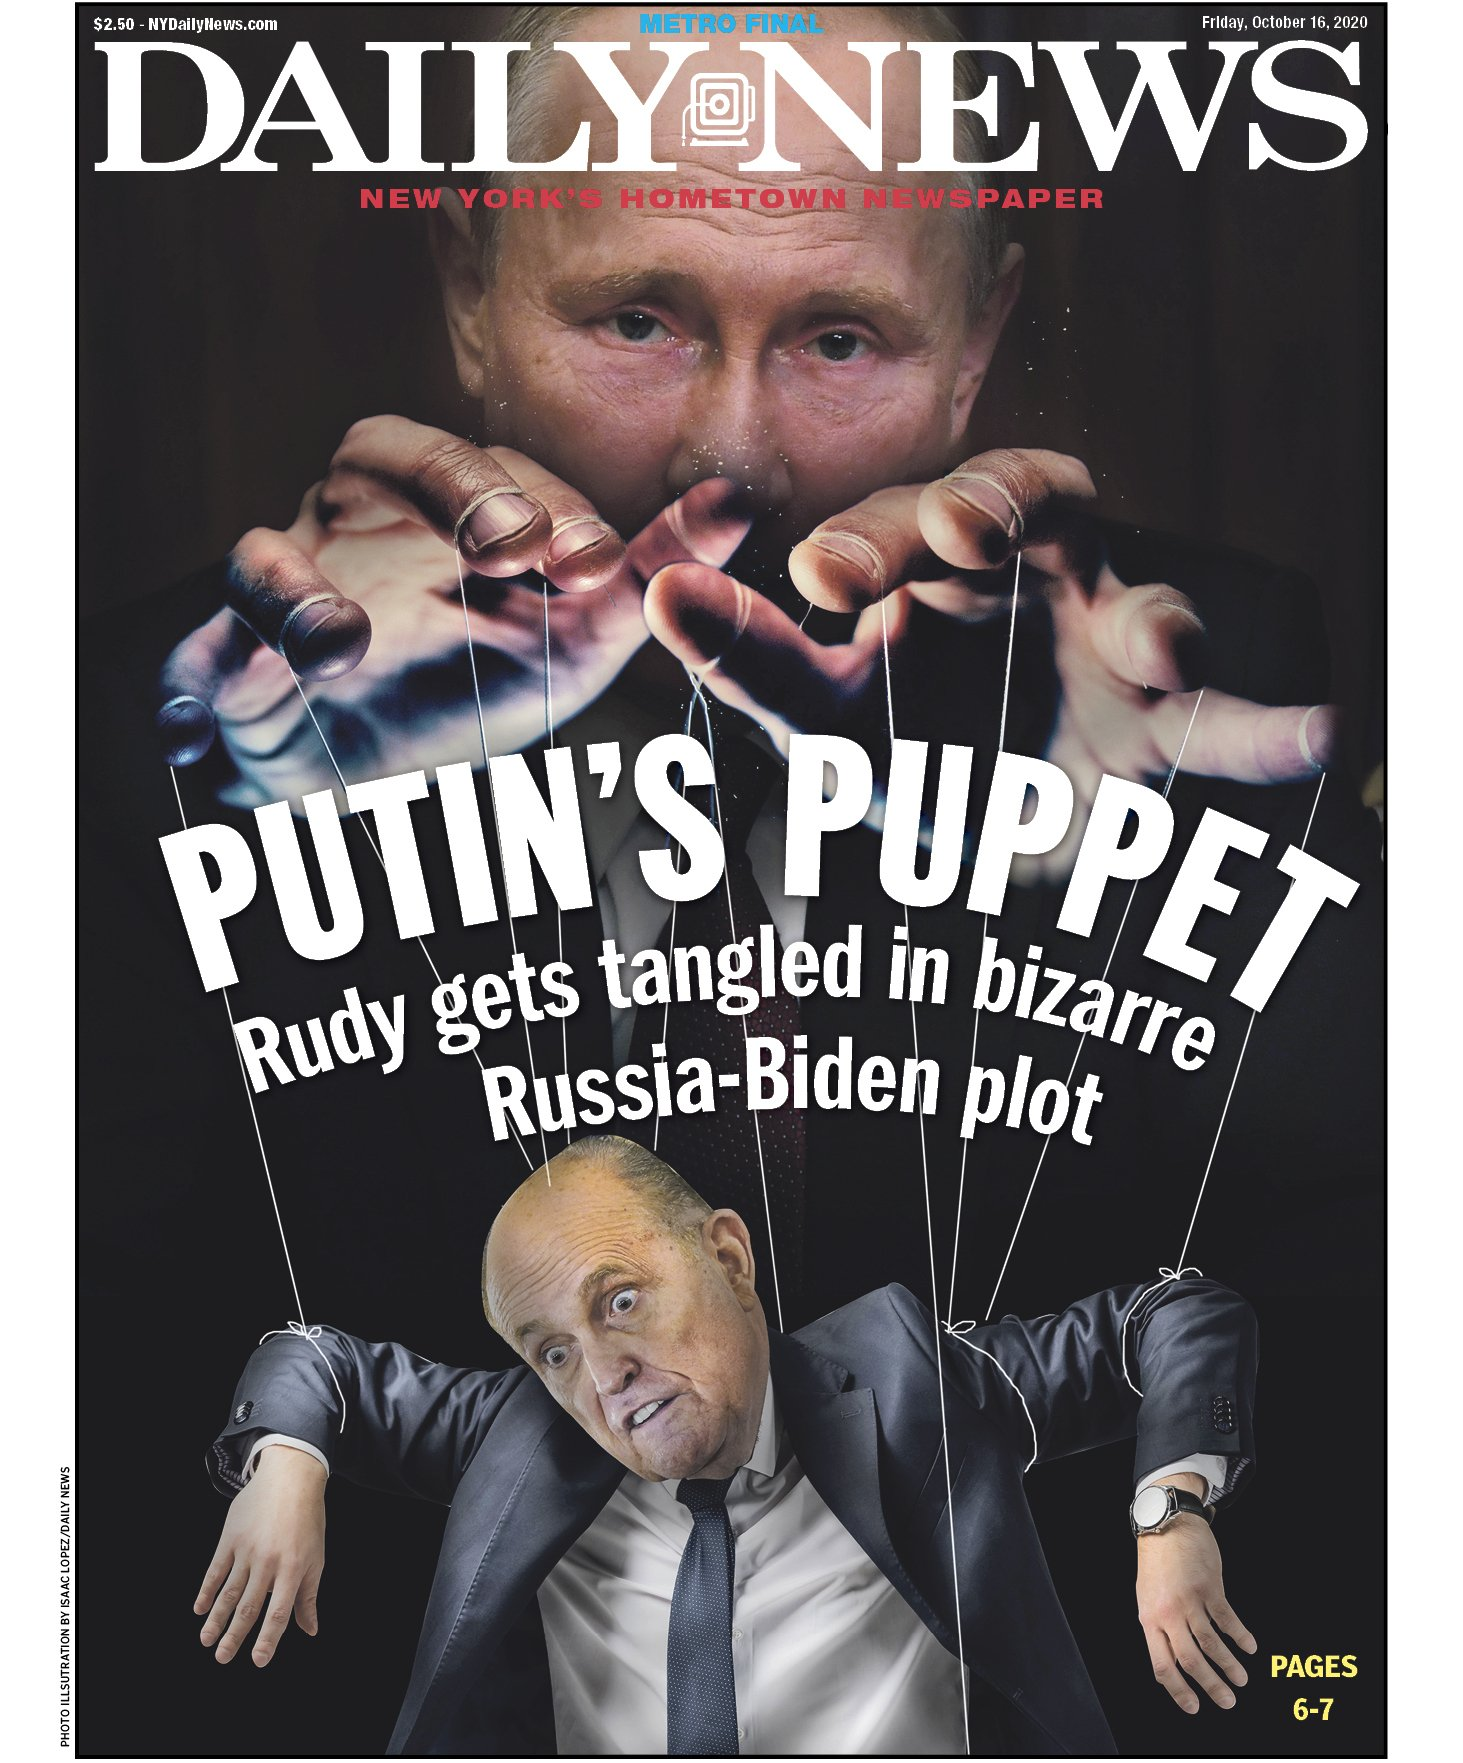 Rupert, And Rudy, And Russian Collusion, Oh My!